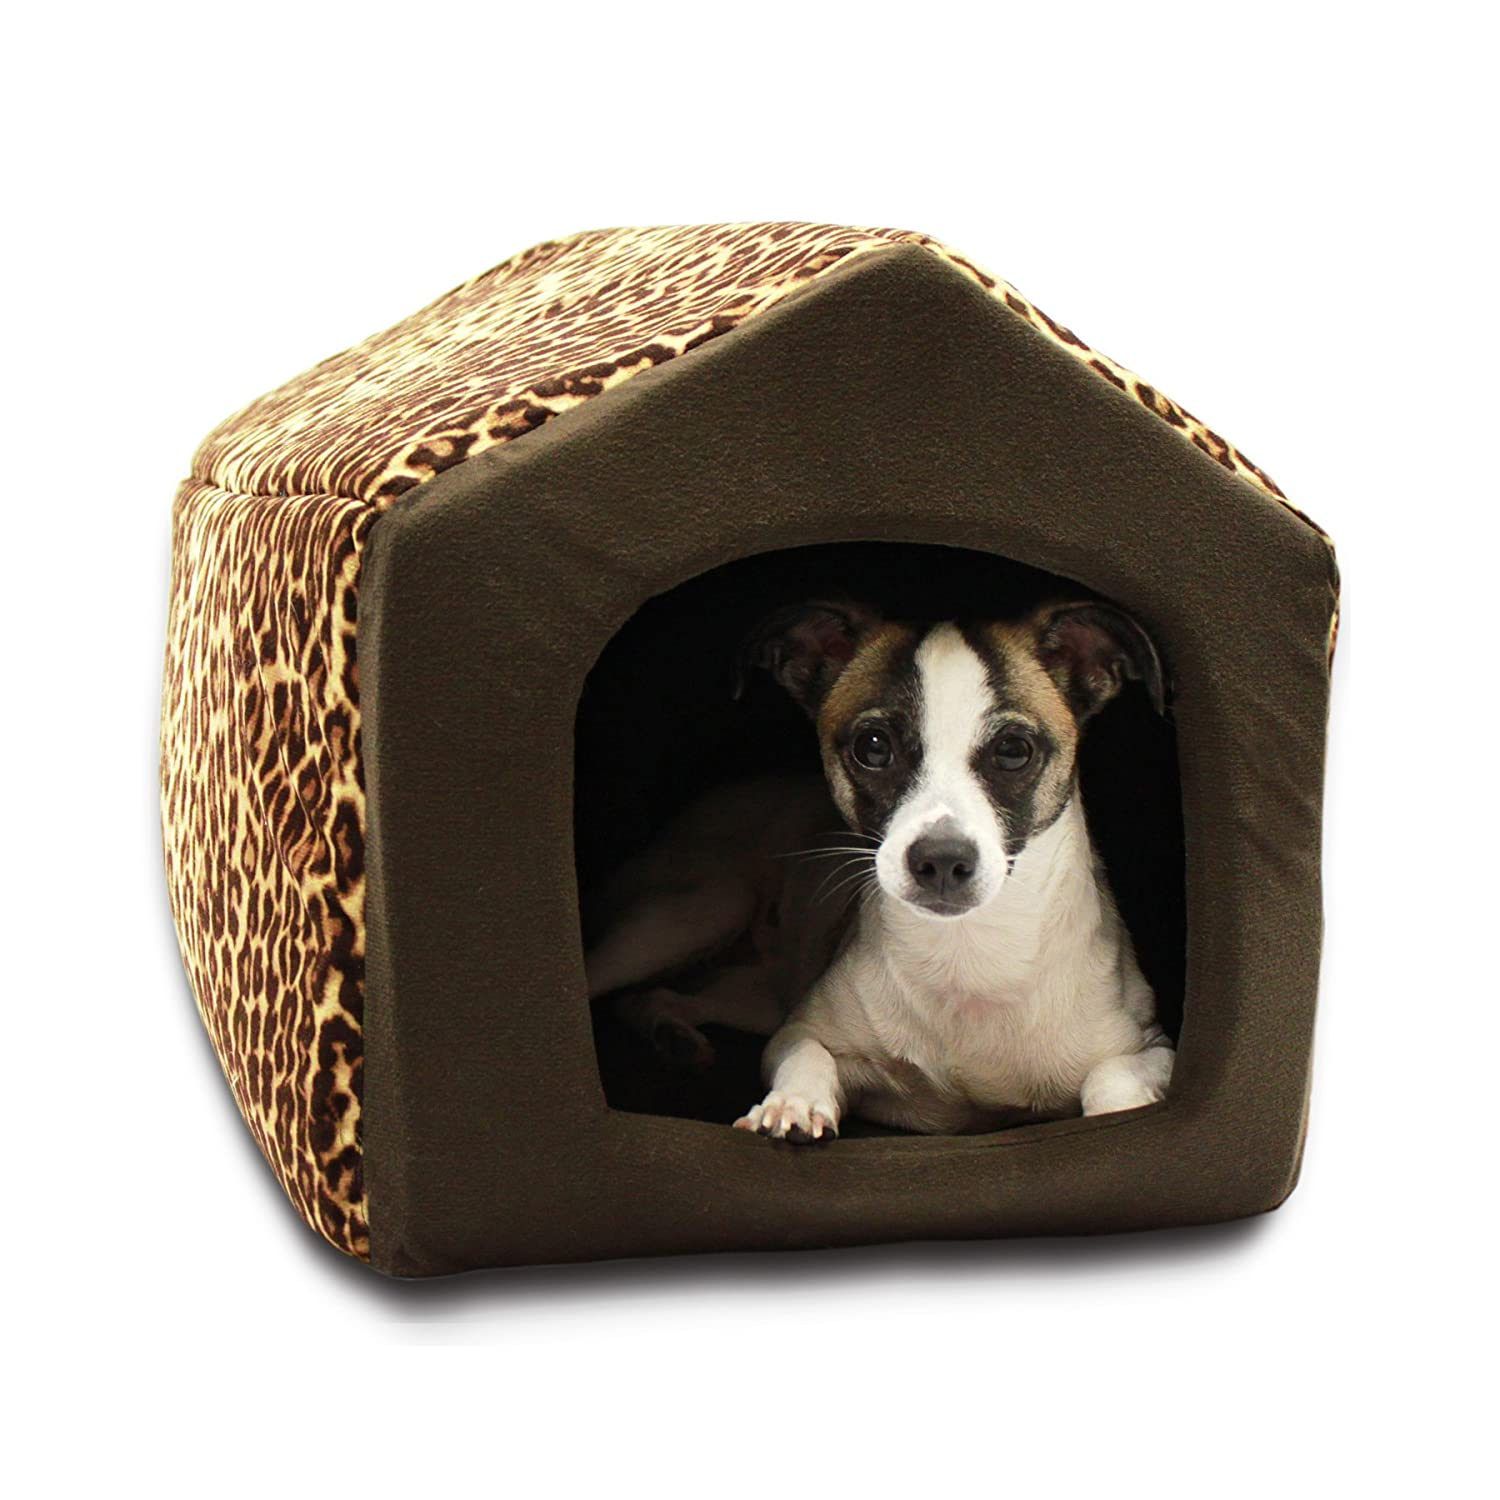 New Pet Puppy Dog House Indoor Sofa Bed Couch Cute Soft Plush Fabric Dogs Cats Ebay